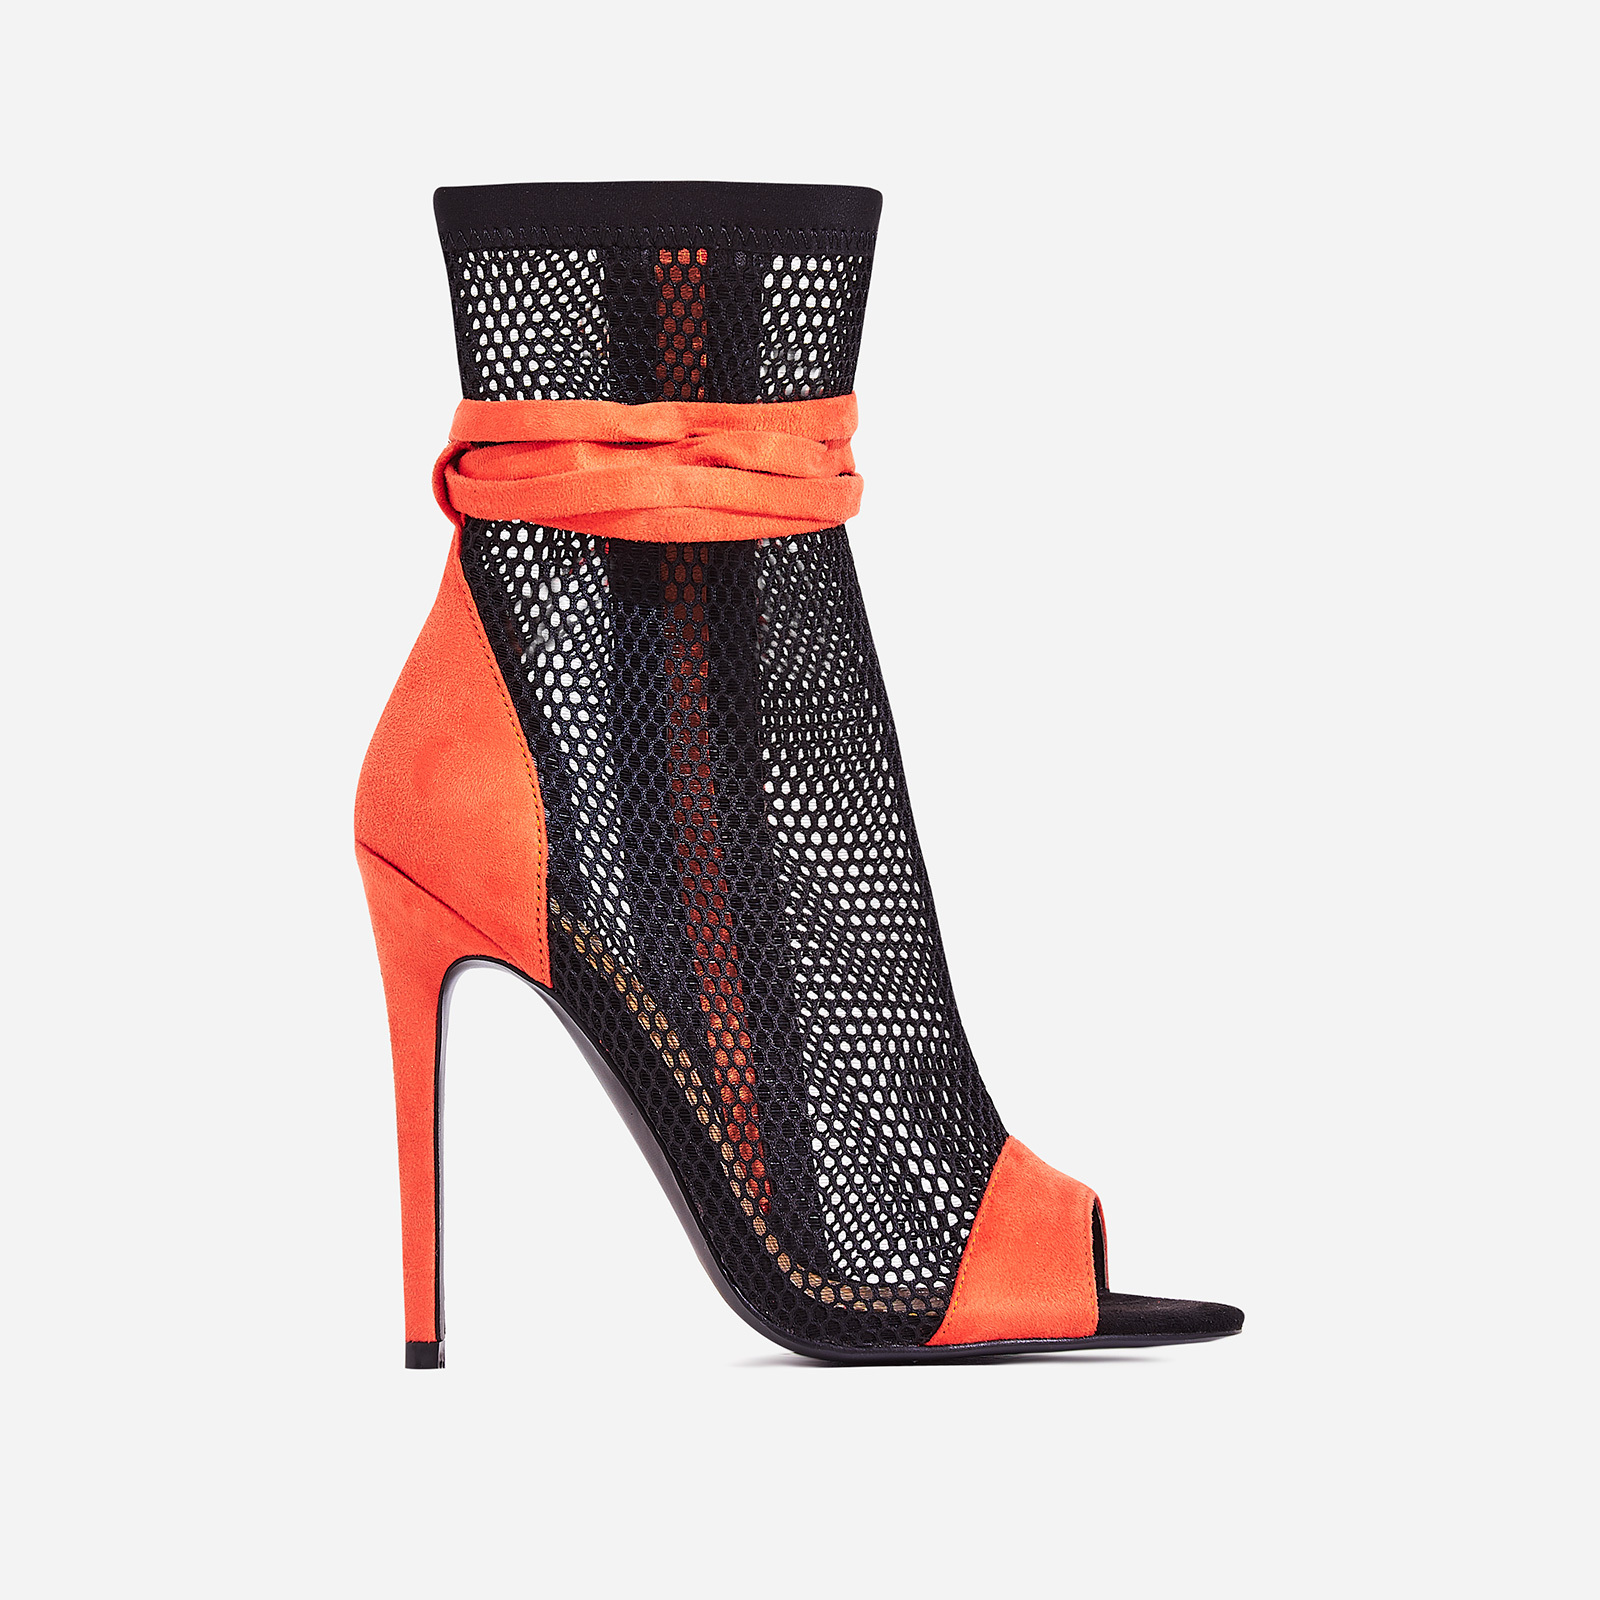 Jax Lace Up Mesh Peep Toe Heel In Orange Faux Suede